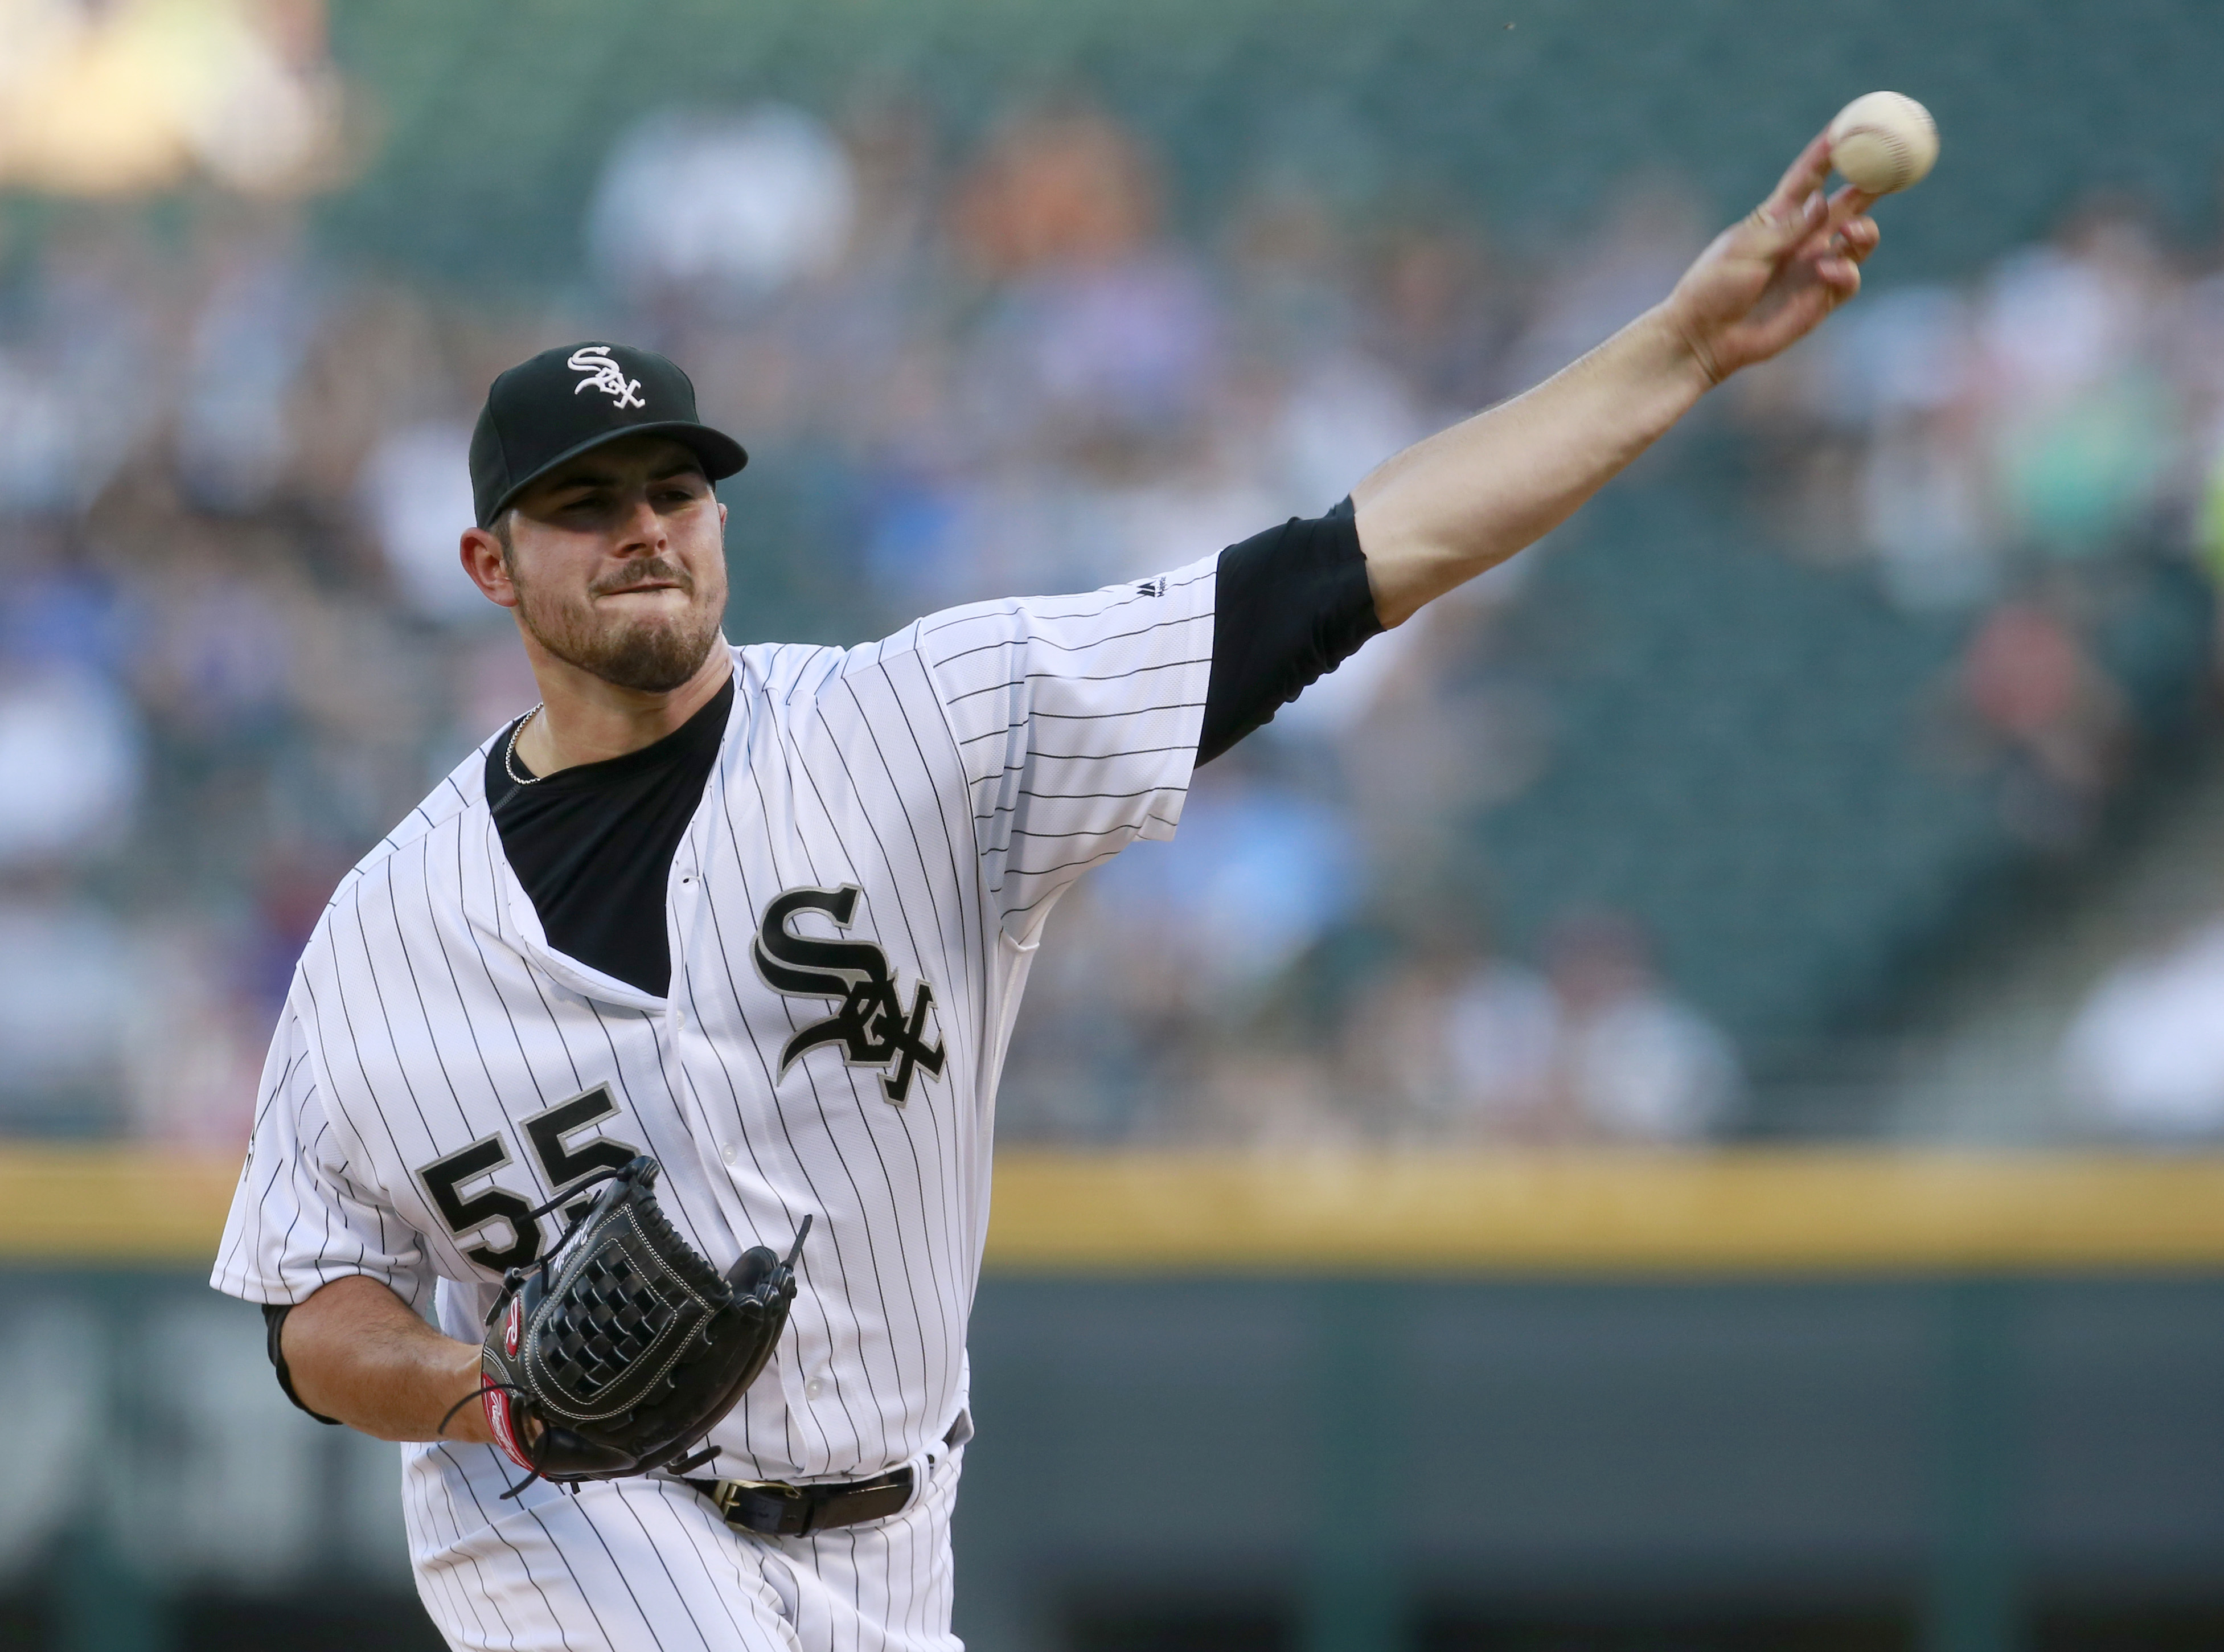 Chicago White Sox starting pitcher Carlos Rodon delivers during the first inning of a baseball game against the New York Yankees in Chicago, Tuesday, July 5, 2016. (AP Photo/Jeff Haynes)